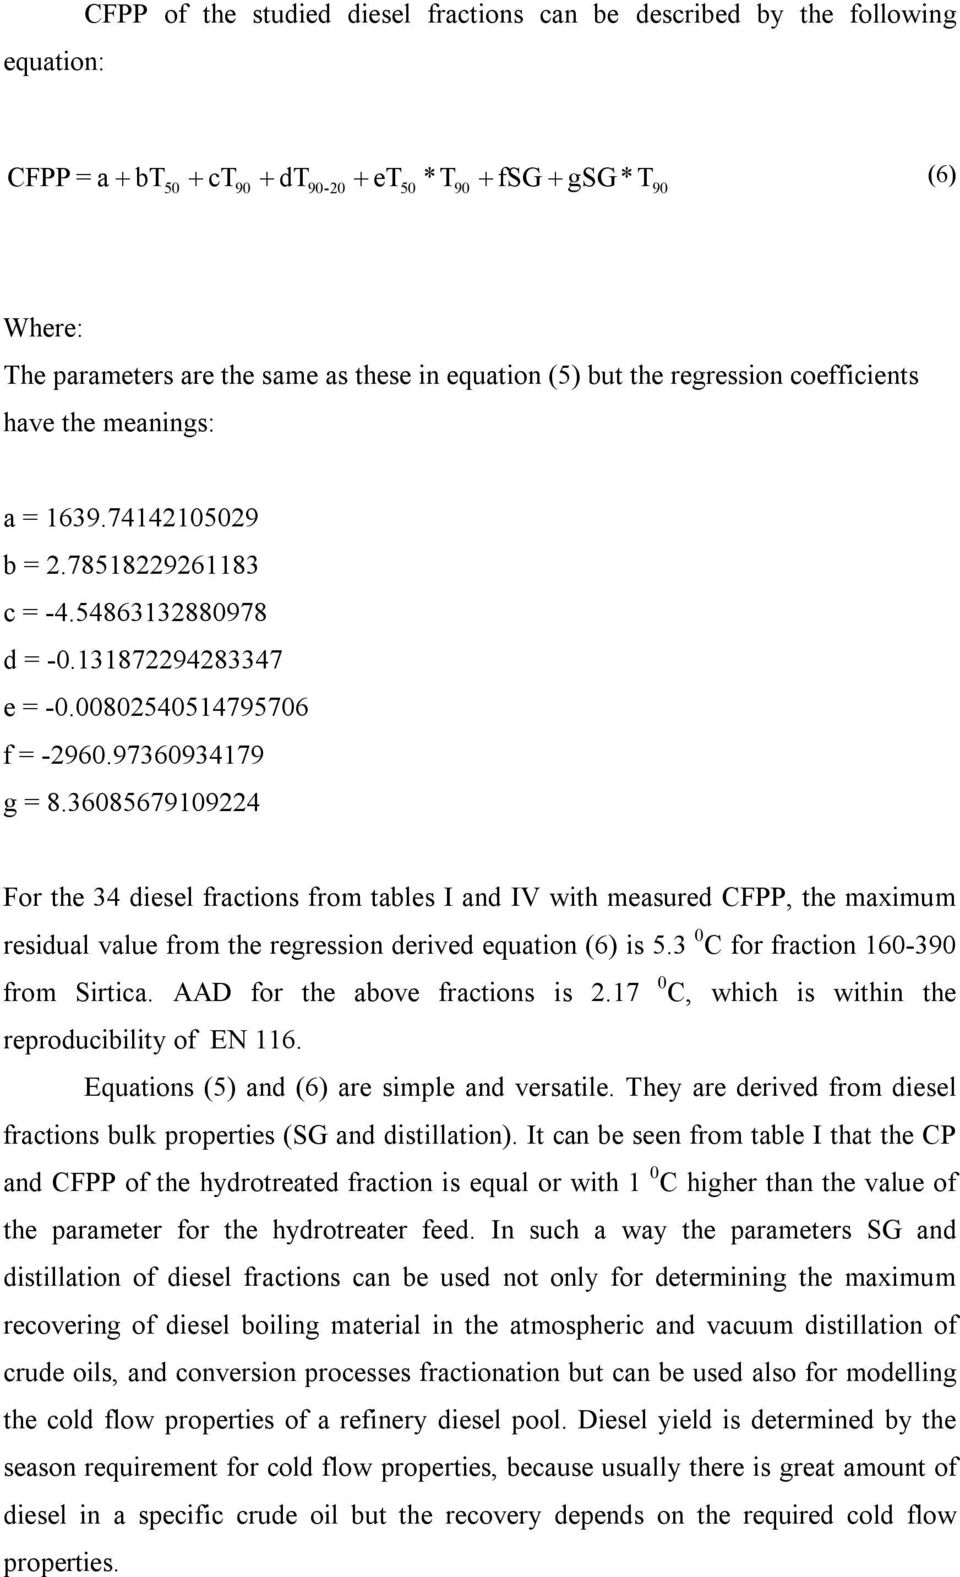 608567909 For the diesel fractions from tables I and IV with measured CFPP, the maximum residual value from the regression derived equation (6) is 5. 0 C for fraction 60-90 from Sirtica.